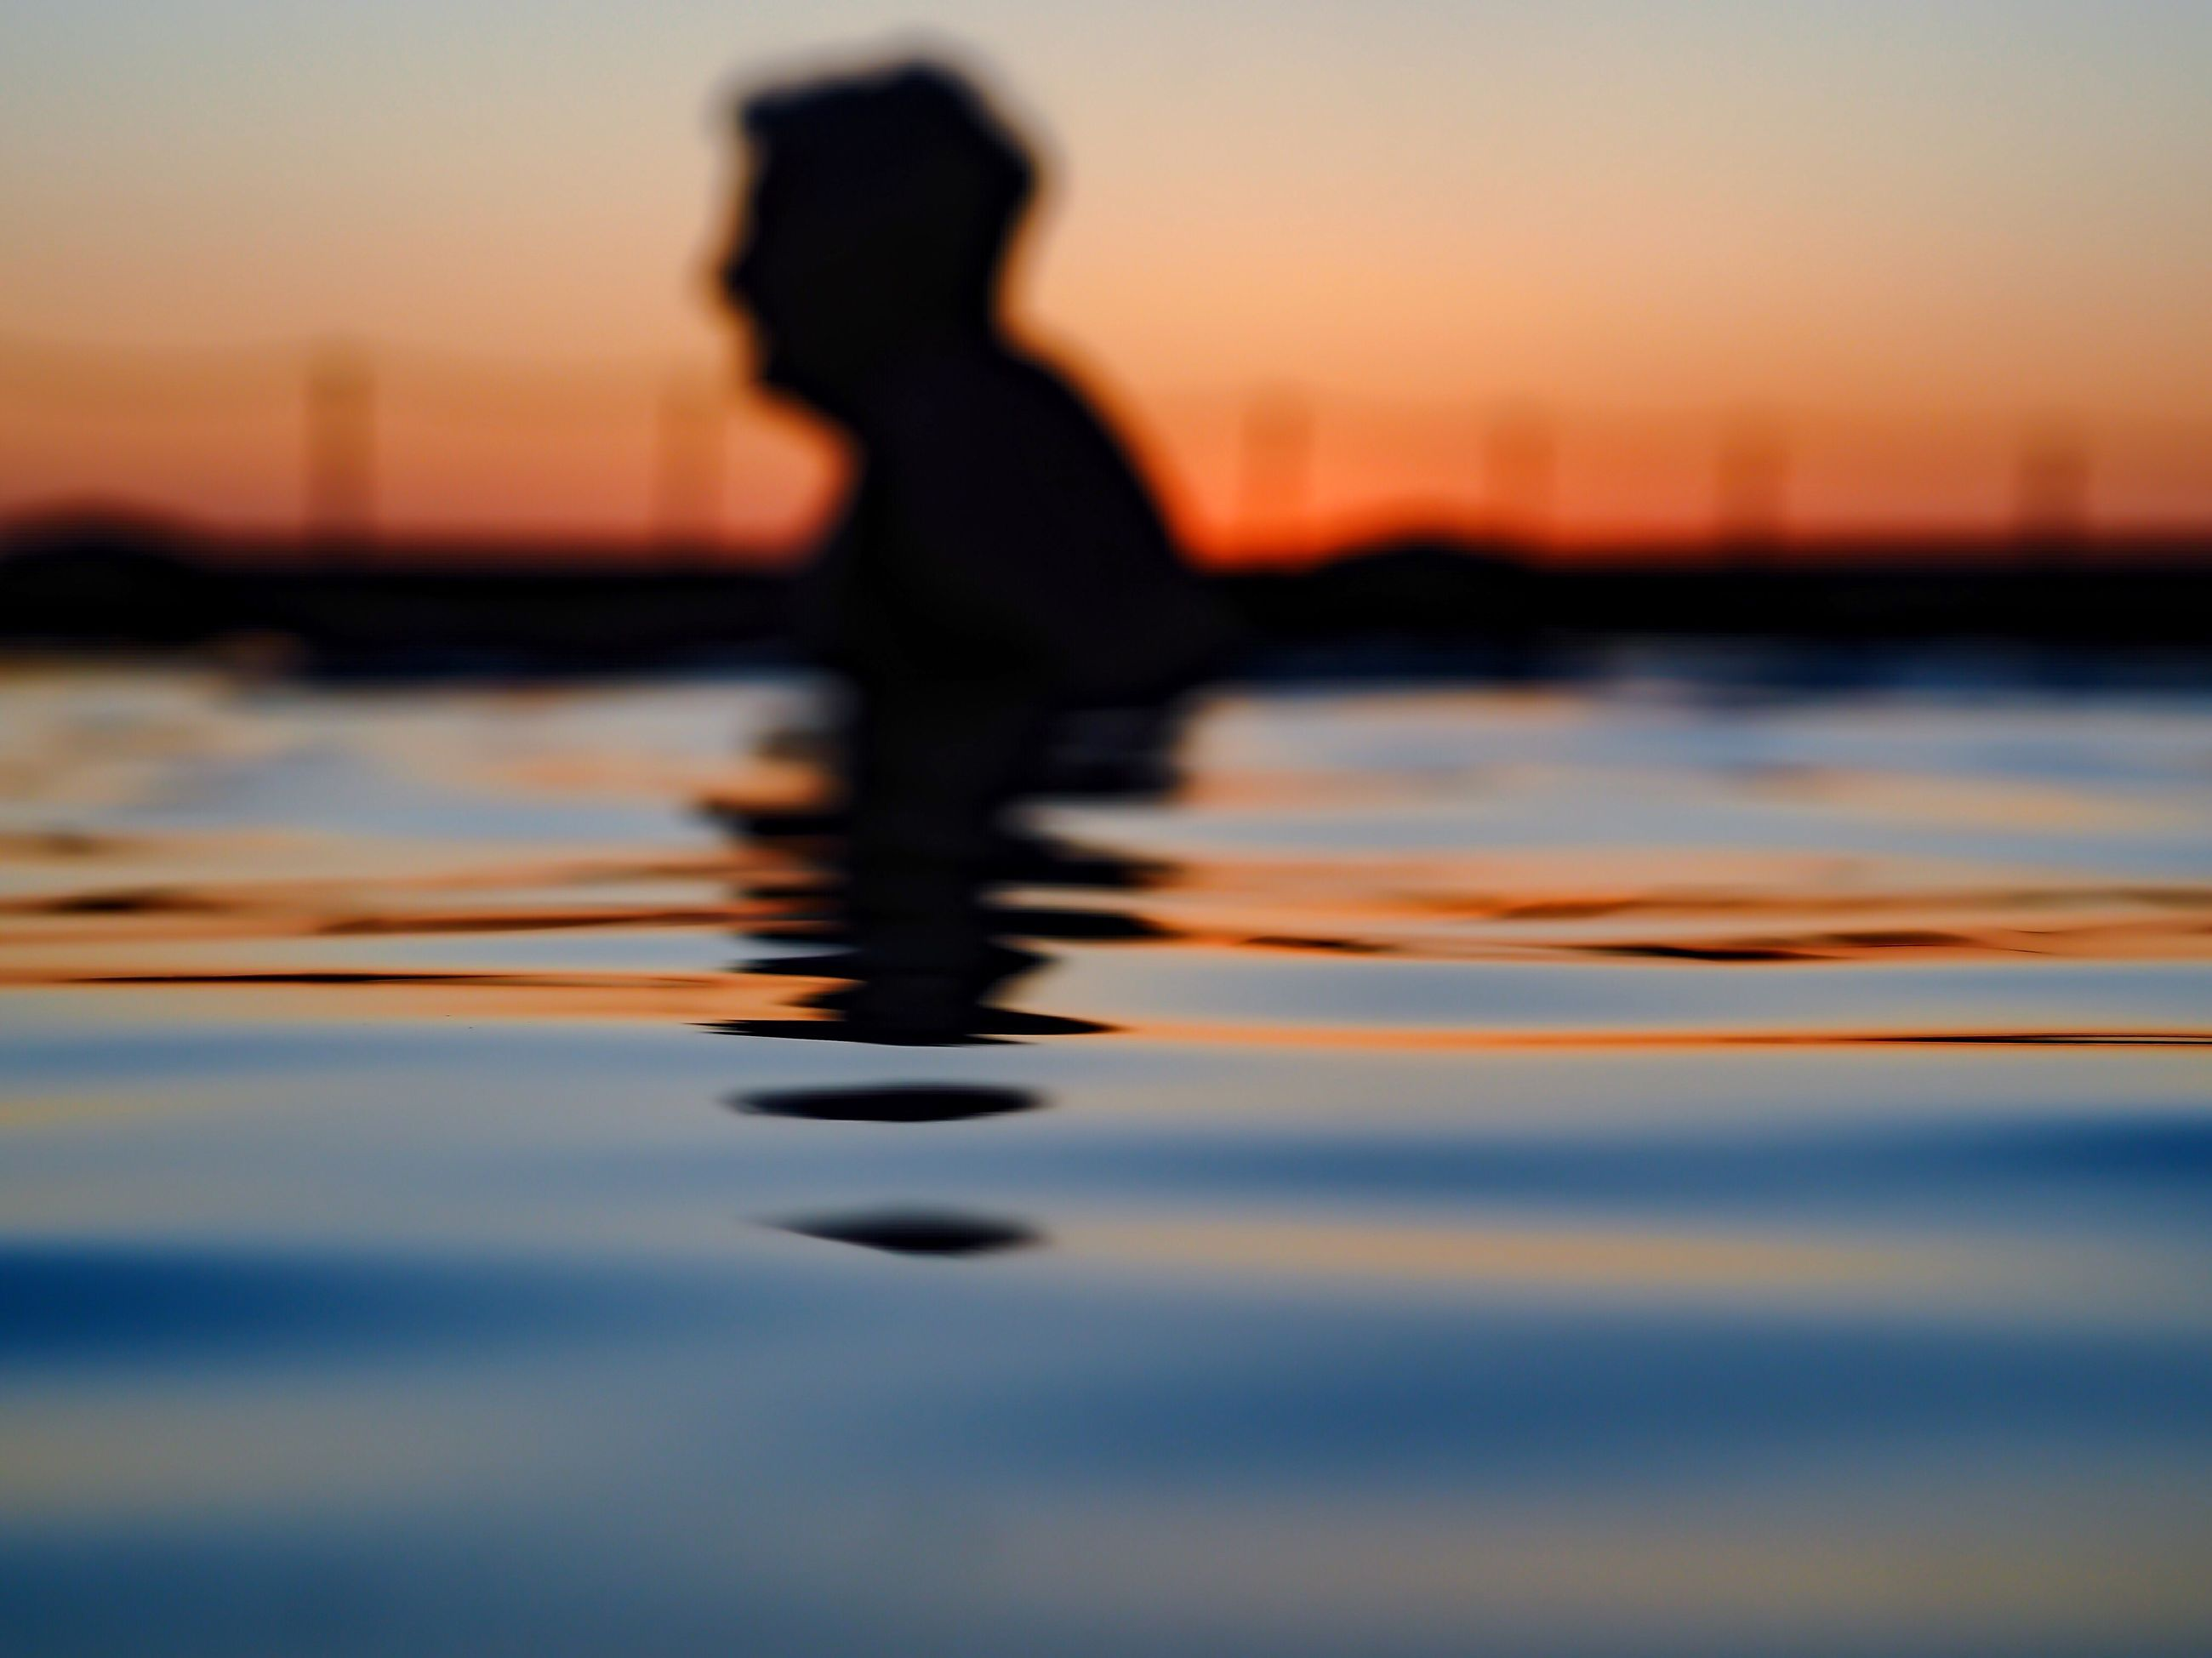 sunset, silhouette, reflection, water, orange color, one person, lifestyles, sea, nature, beauty in nature, outdoors, real people, sky, people, adult, day